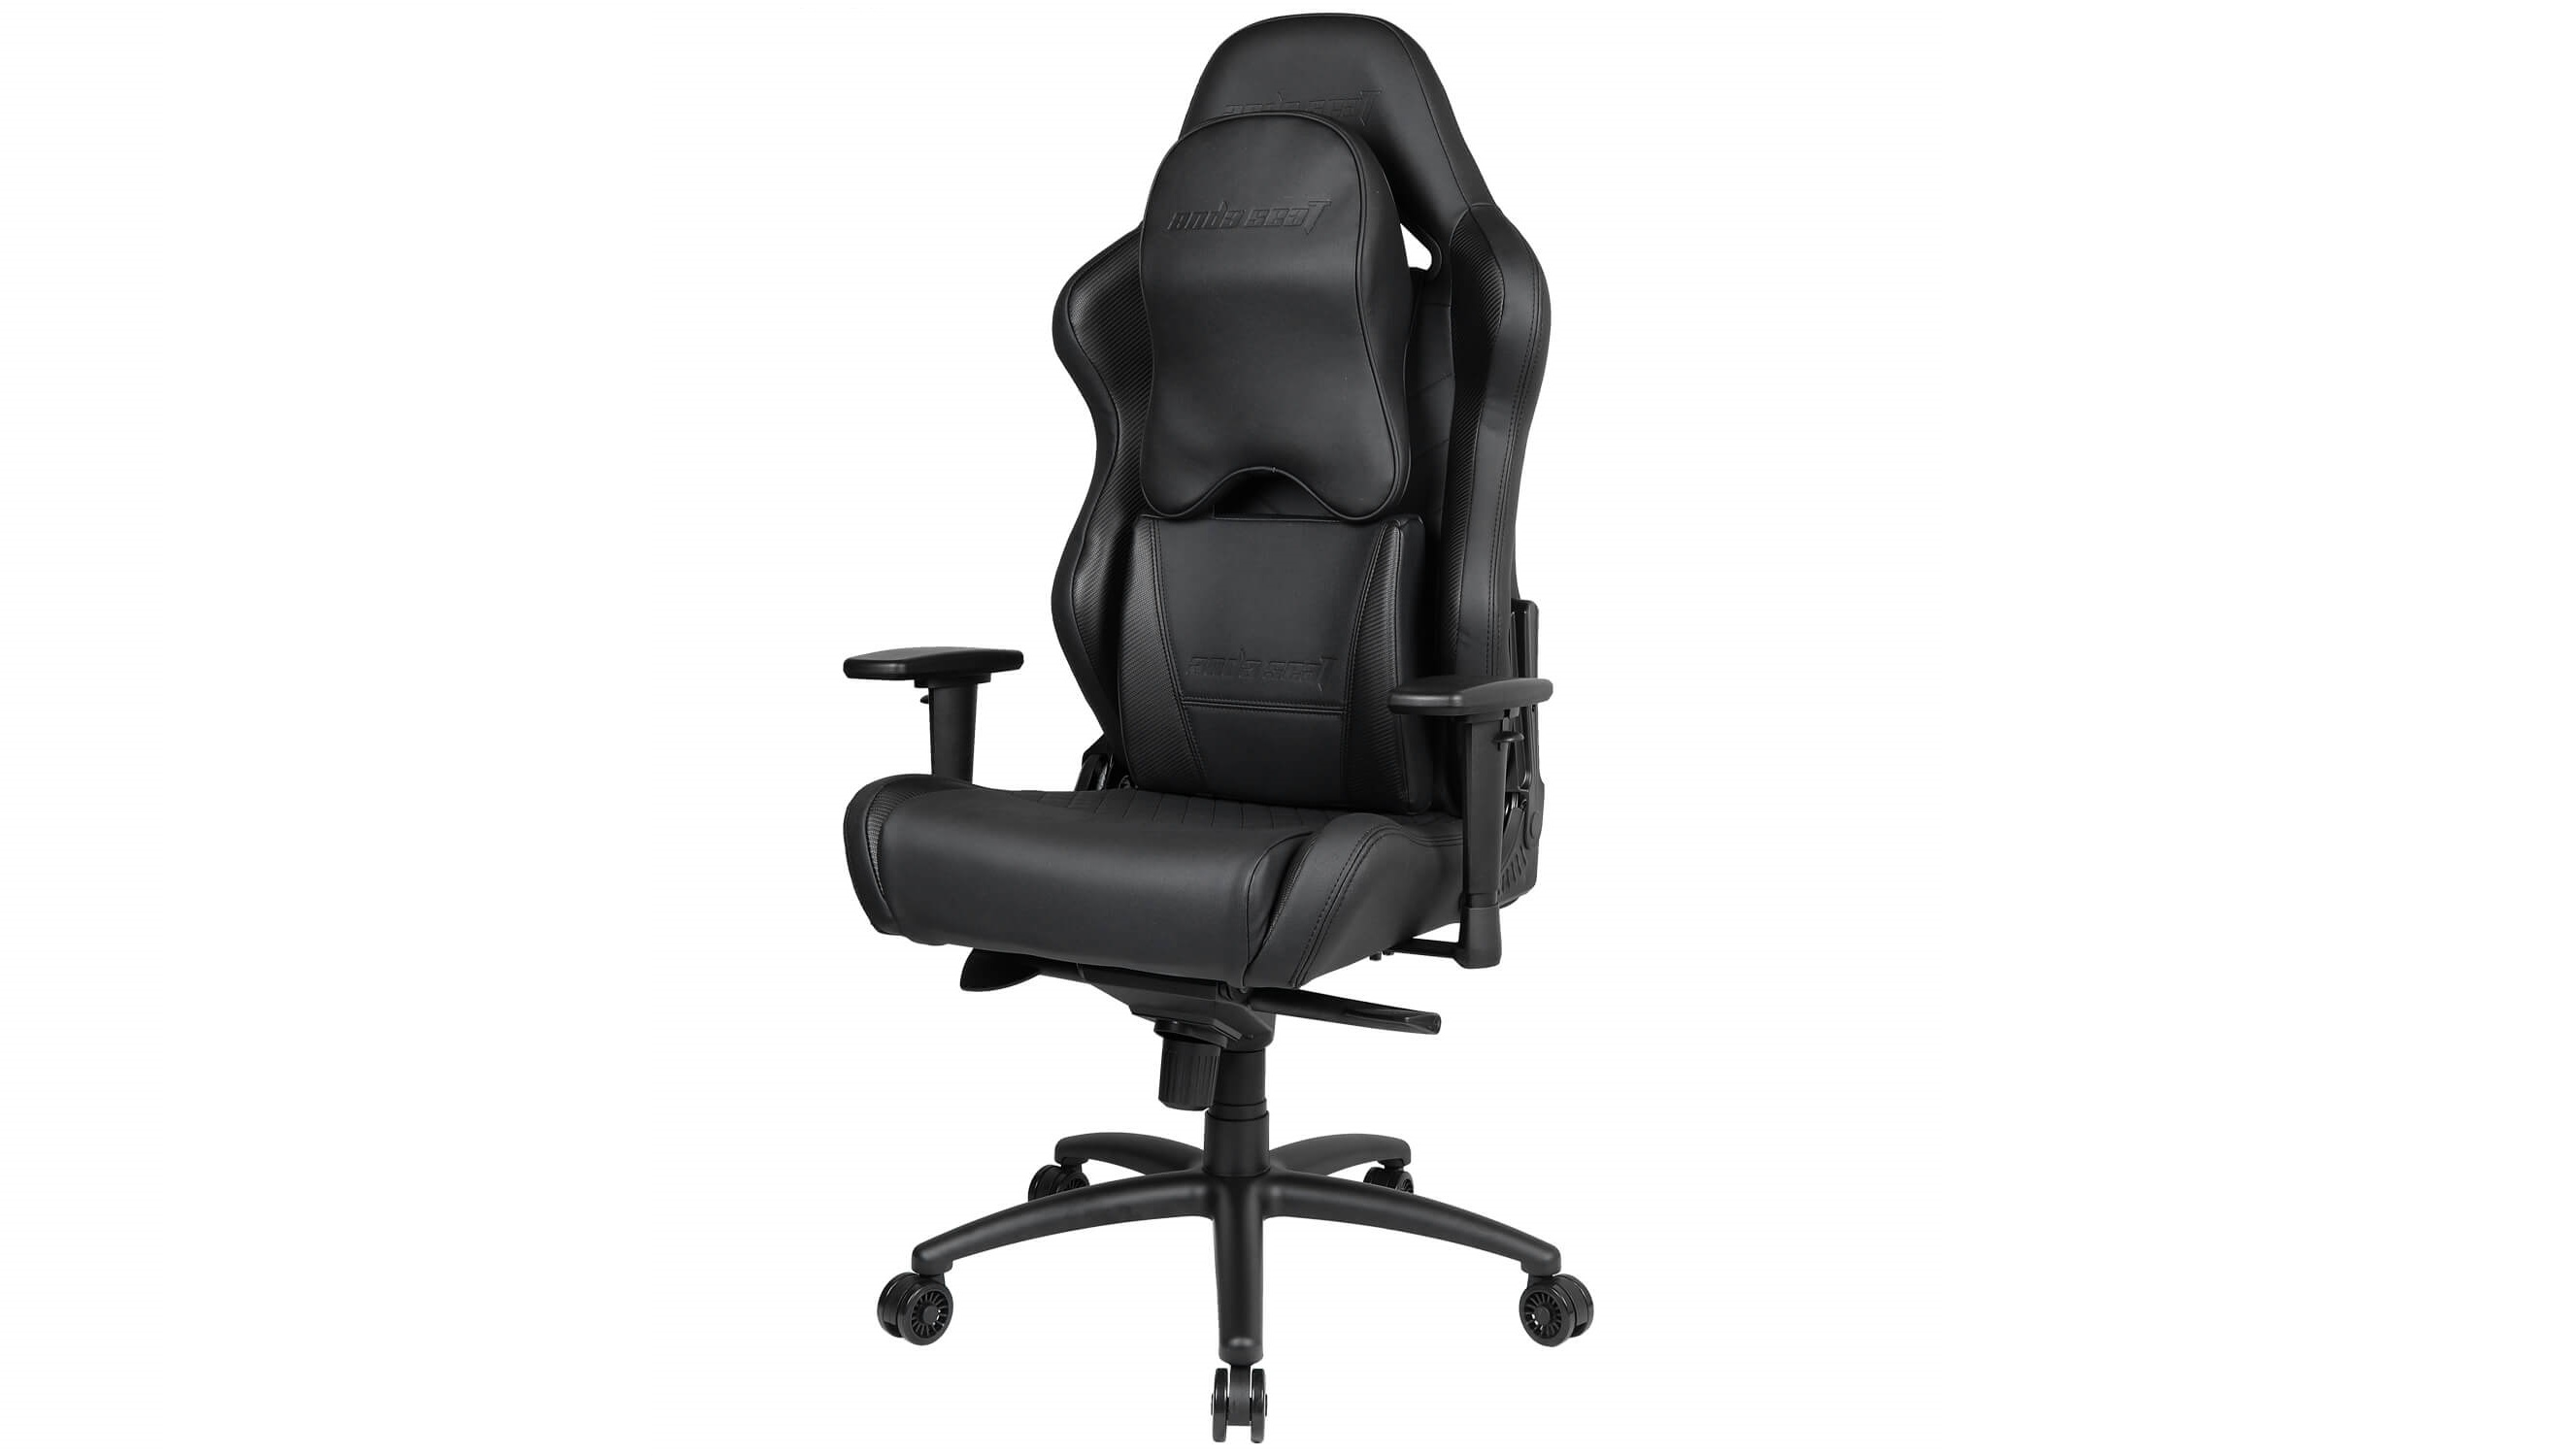 Anda Seat Dark Wizard Gaming Chair Review